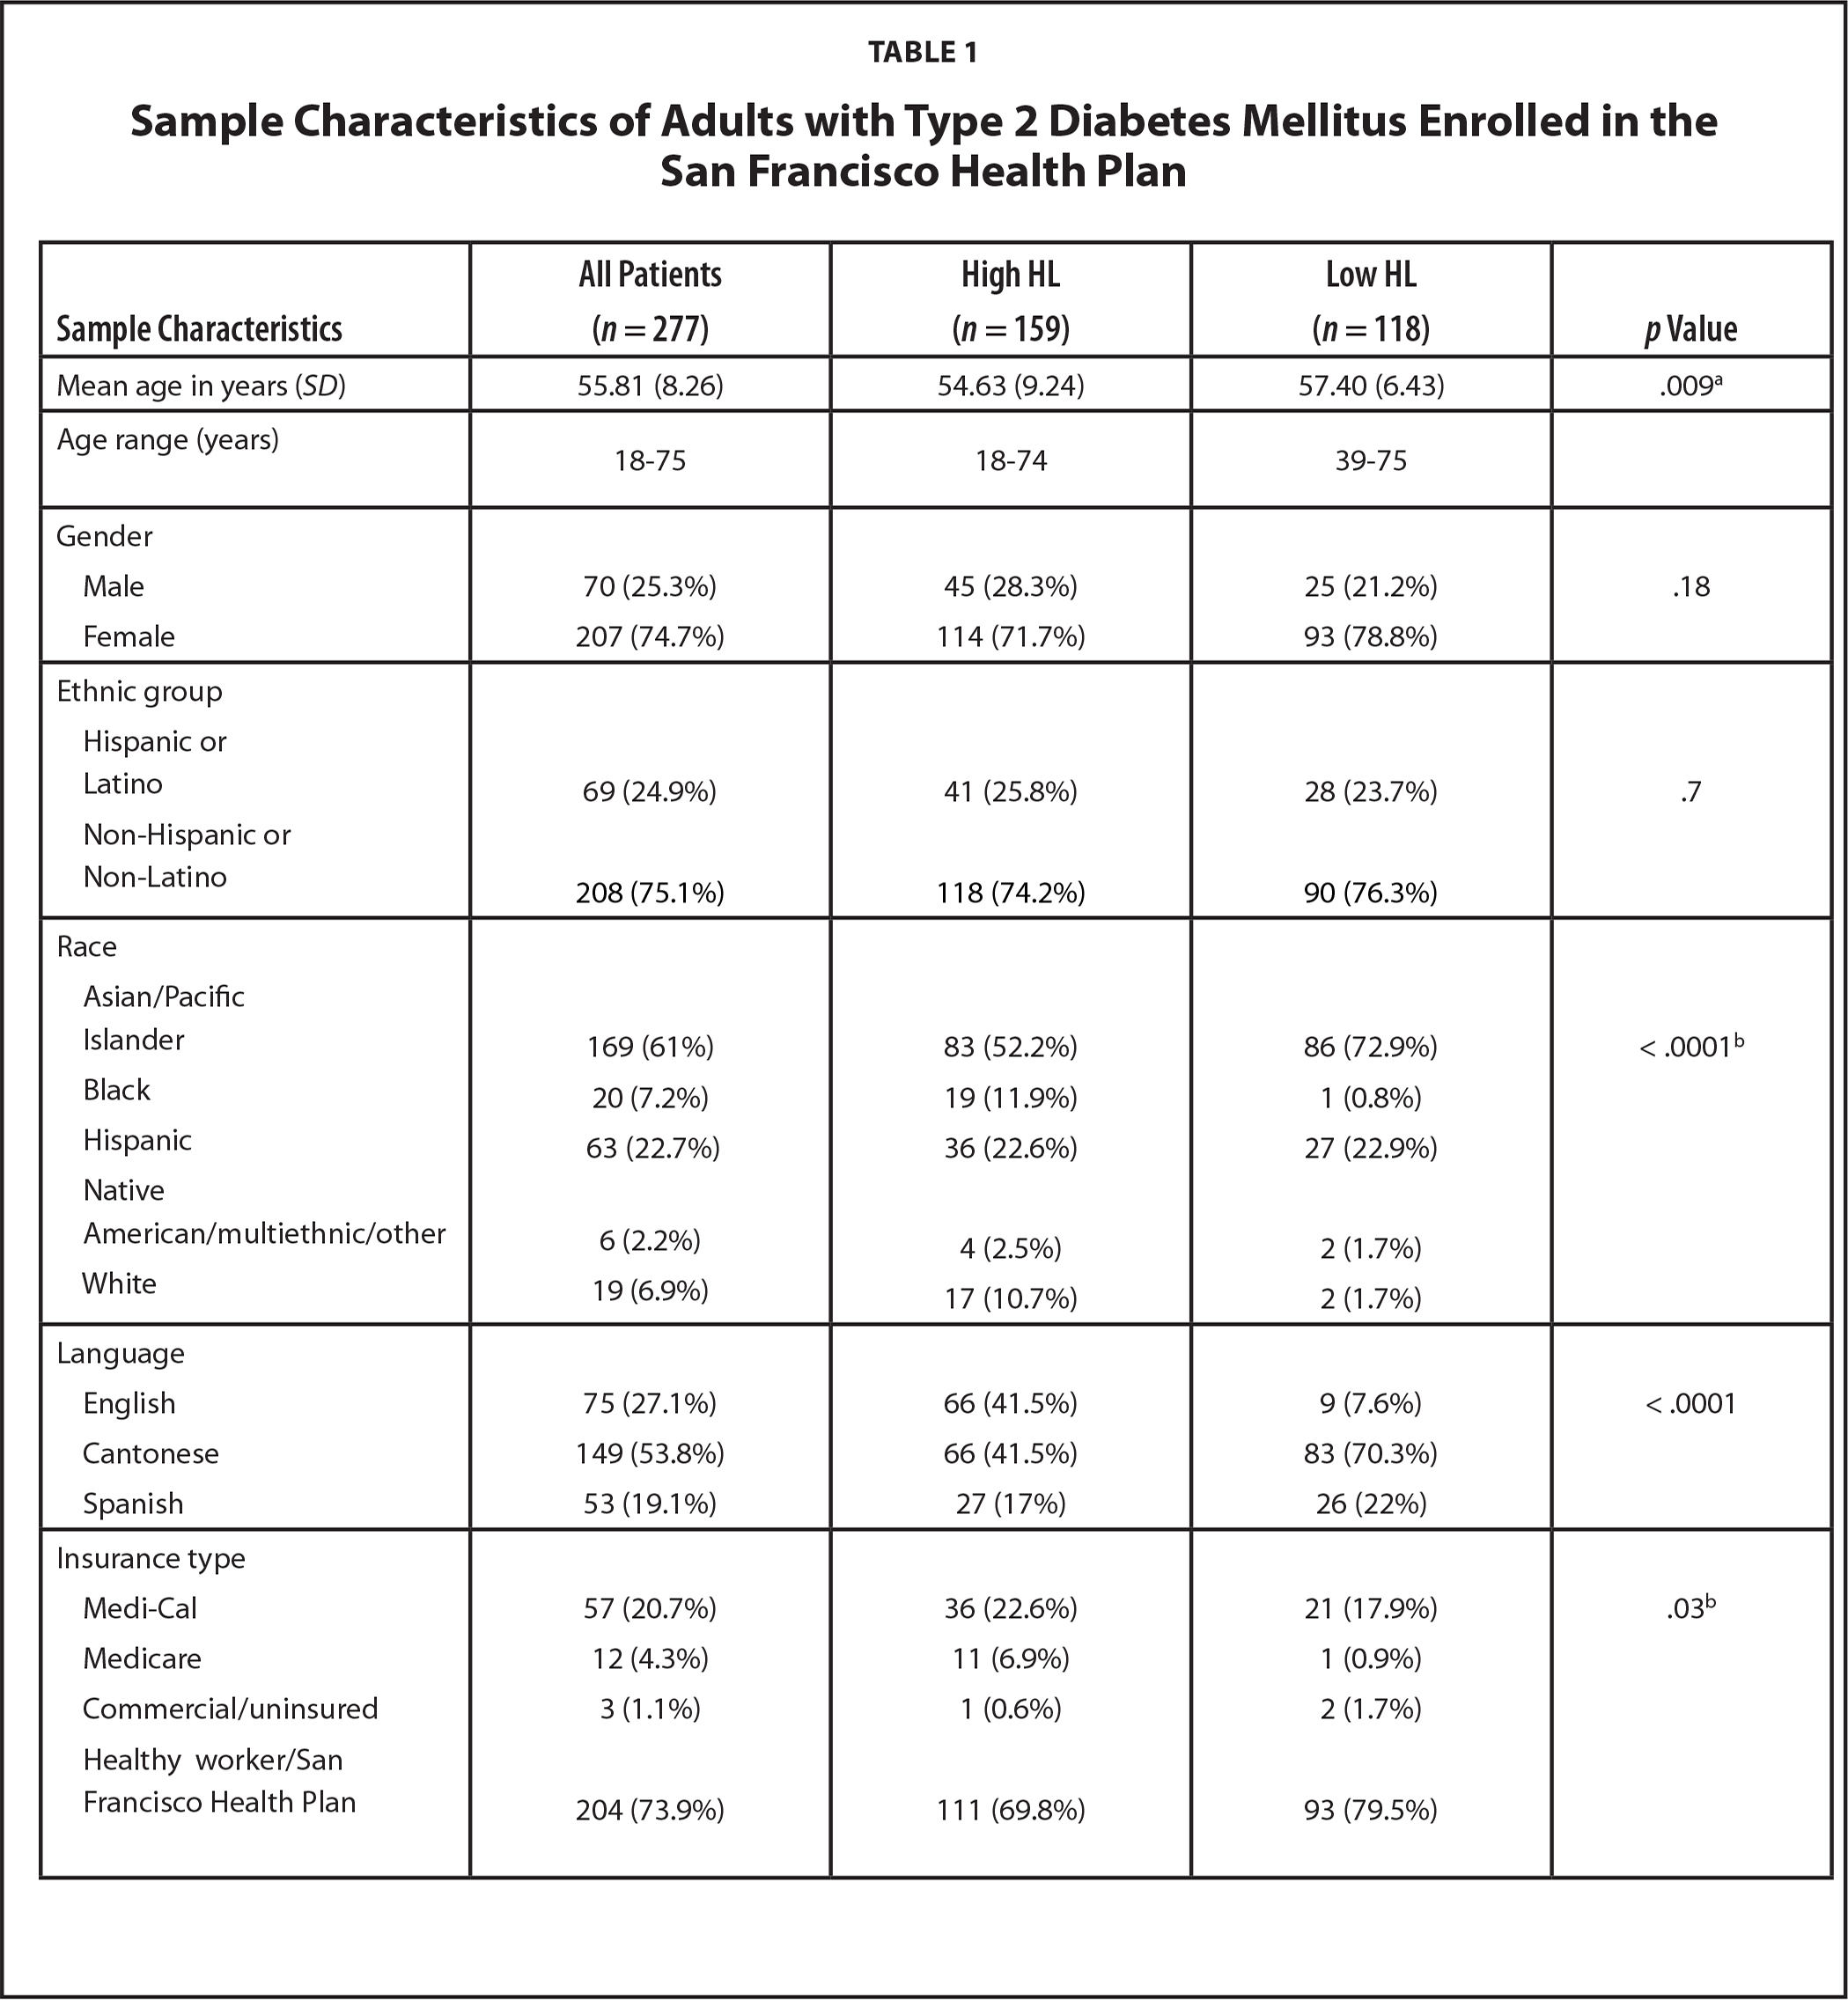 Sample Characteristics of Adults with Type 2 Diabetes Mellitus Enrolled in the San Francisco Health Plan